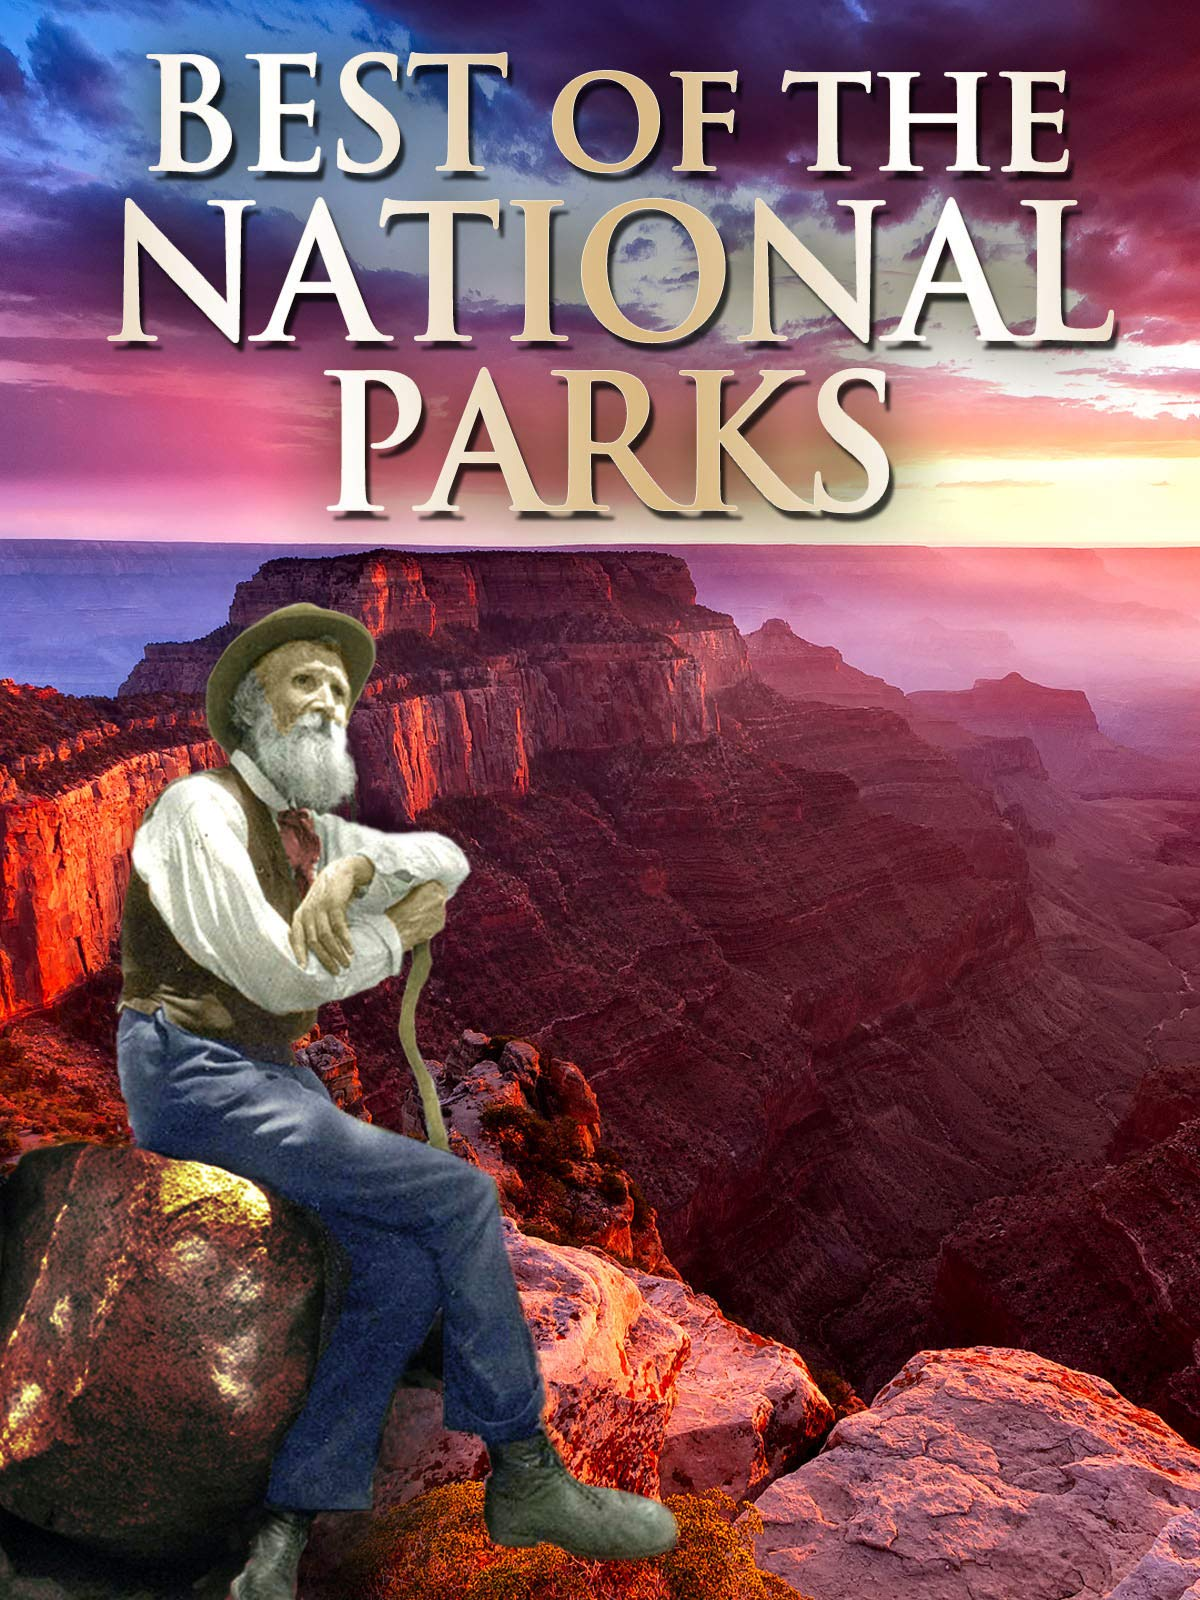 Best of the National Parks